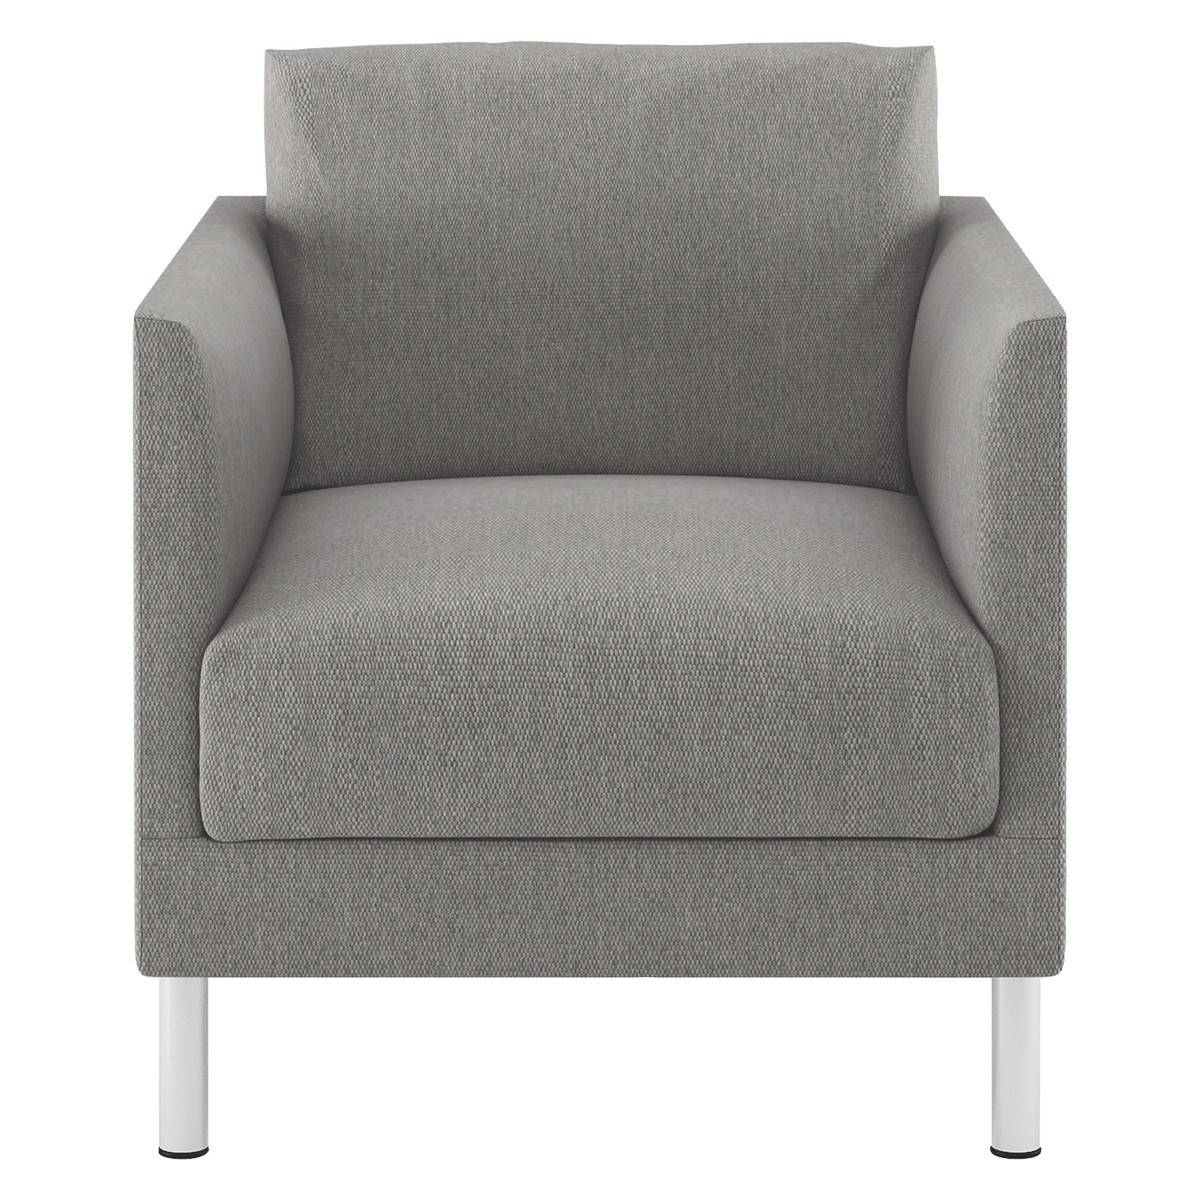 Hyde Grey Fabric Armchair, Metal Legs | Buy Now At Habitat Uk throughout Fabric Armchairs (Image 19 of 30)